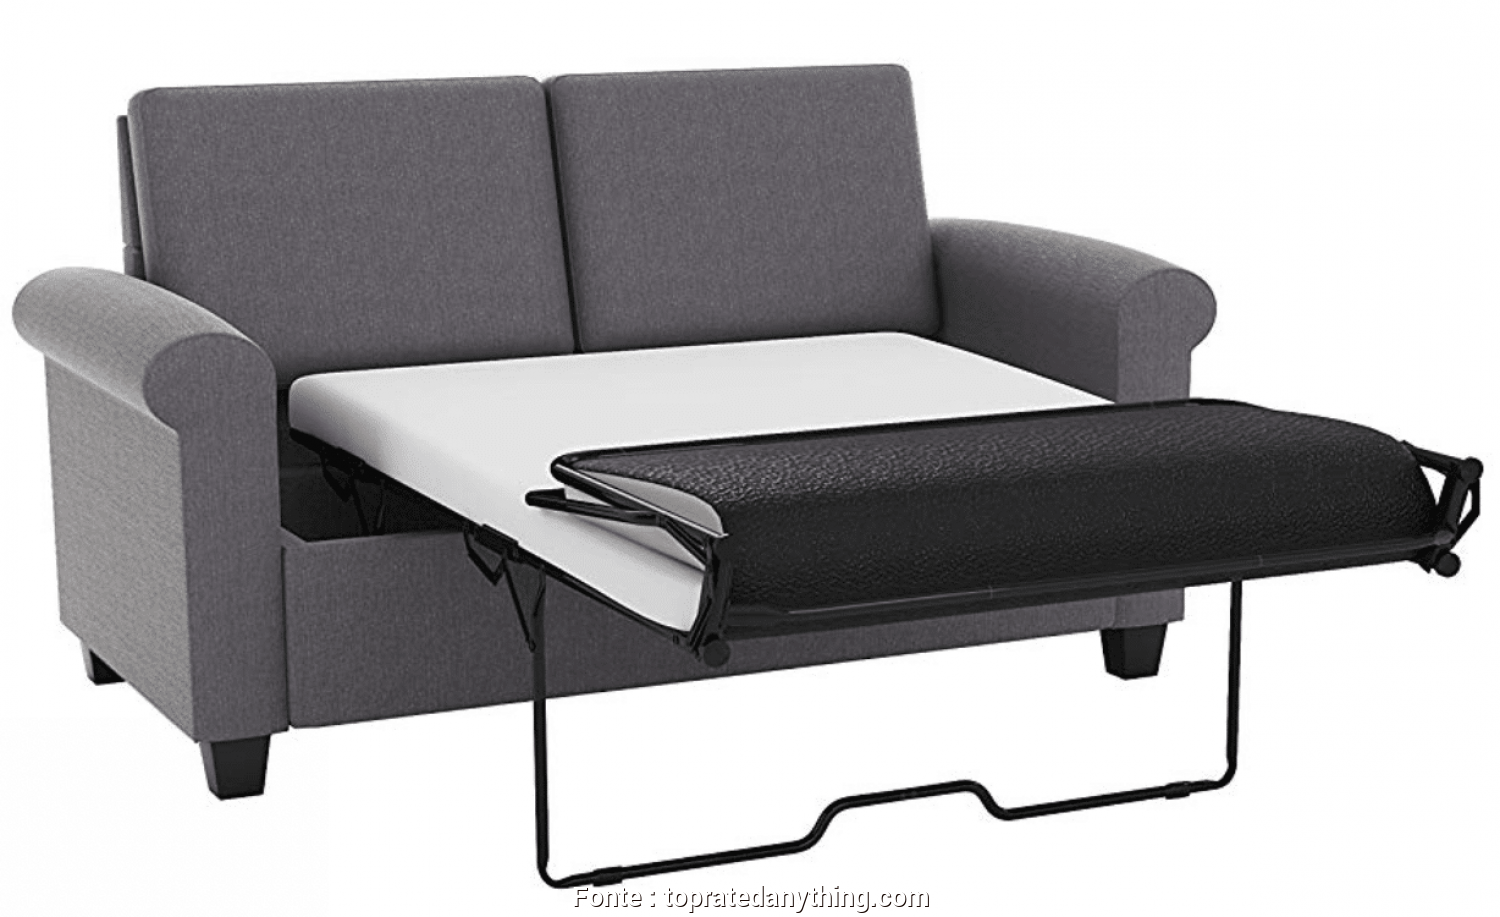 How Do, Open An Ikea Futon, Buono 7 Best Sleeper Sofas & Mattresses (2019),, Rated Anything